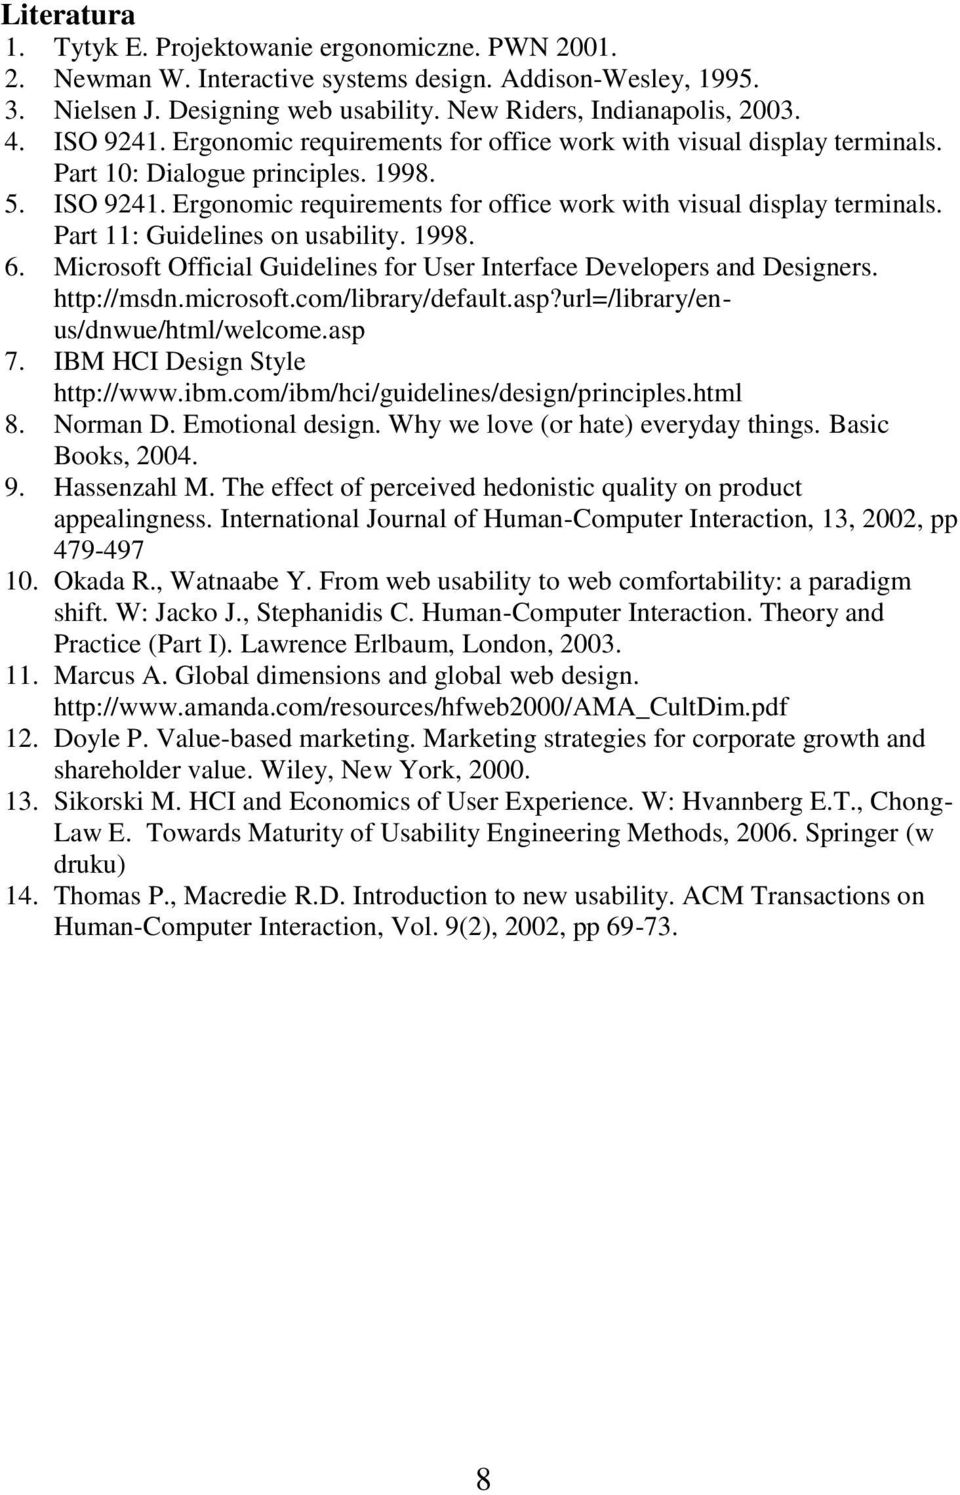 1998. 6. Microsoft Official Guidelines for User Interface Developers and Designers. http://msdn.microsoft.com/library/default.asp?url=/library/enus/dnwue/html/welcome.asp 7.